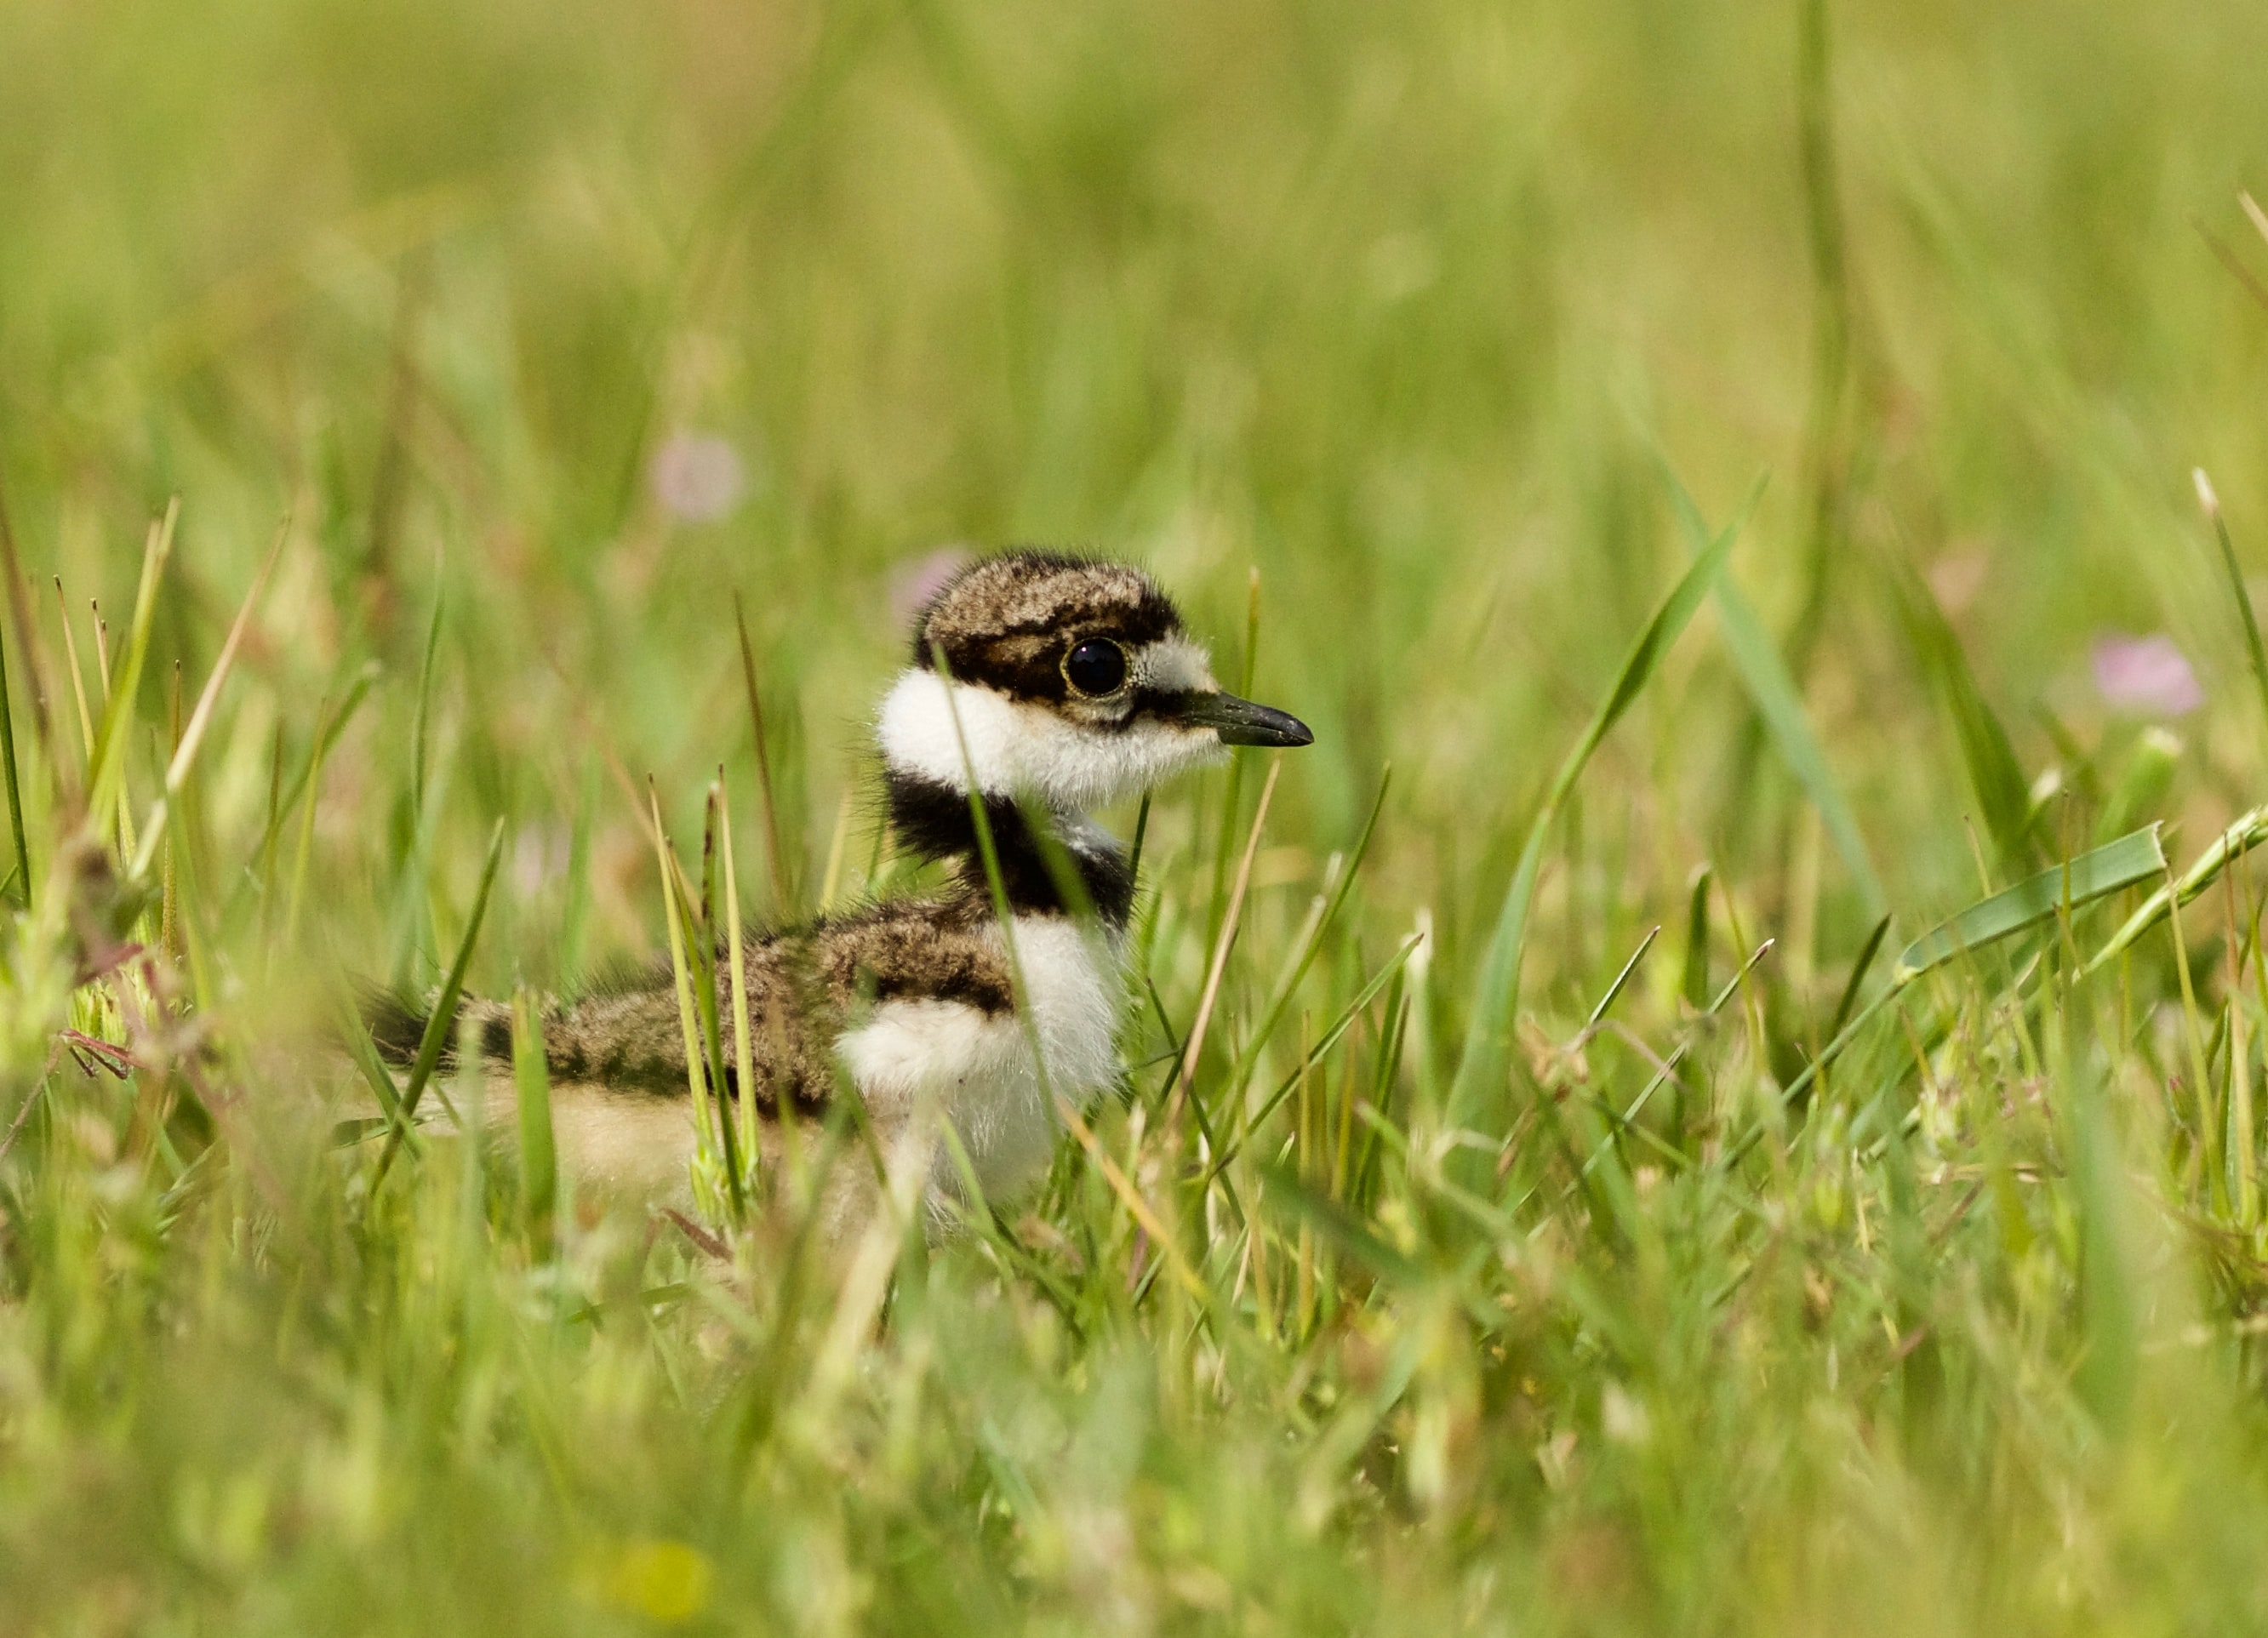 white and brown bird on green grass